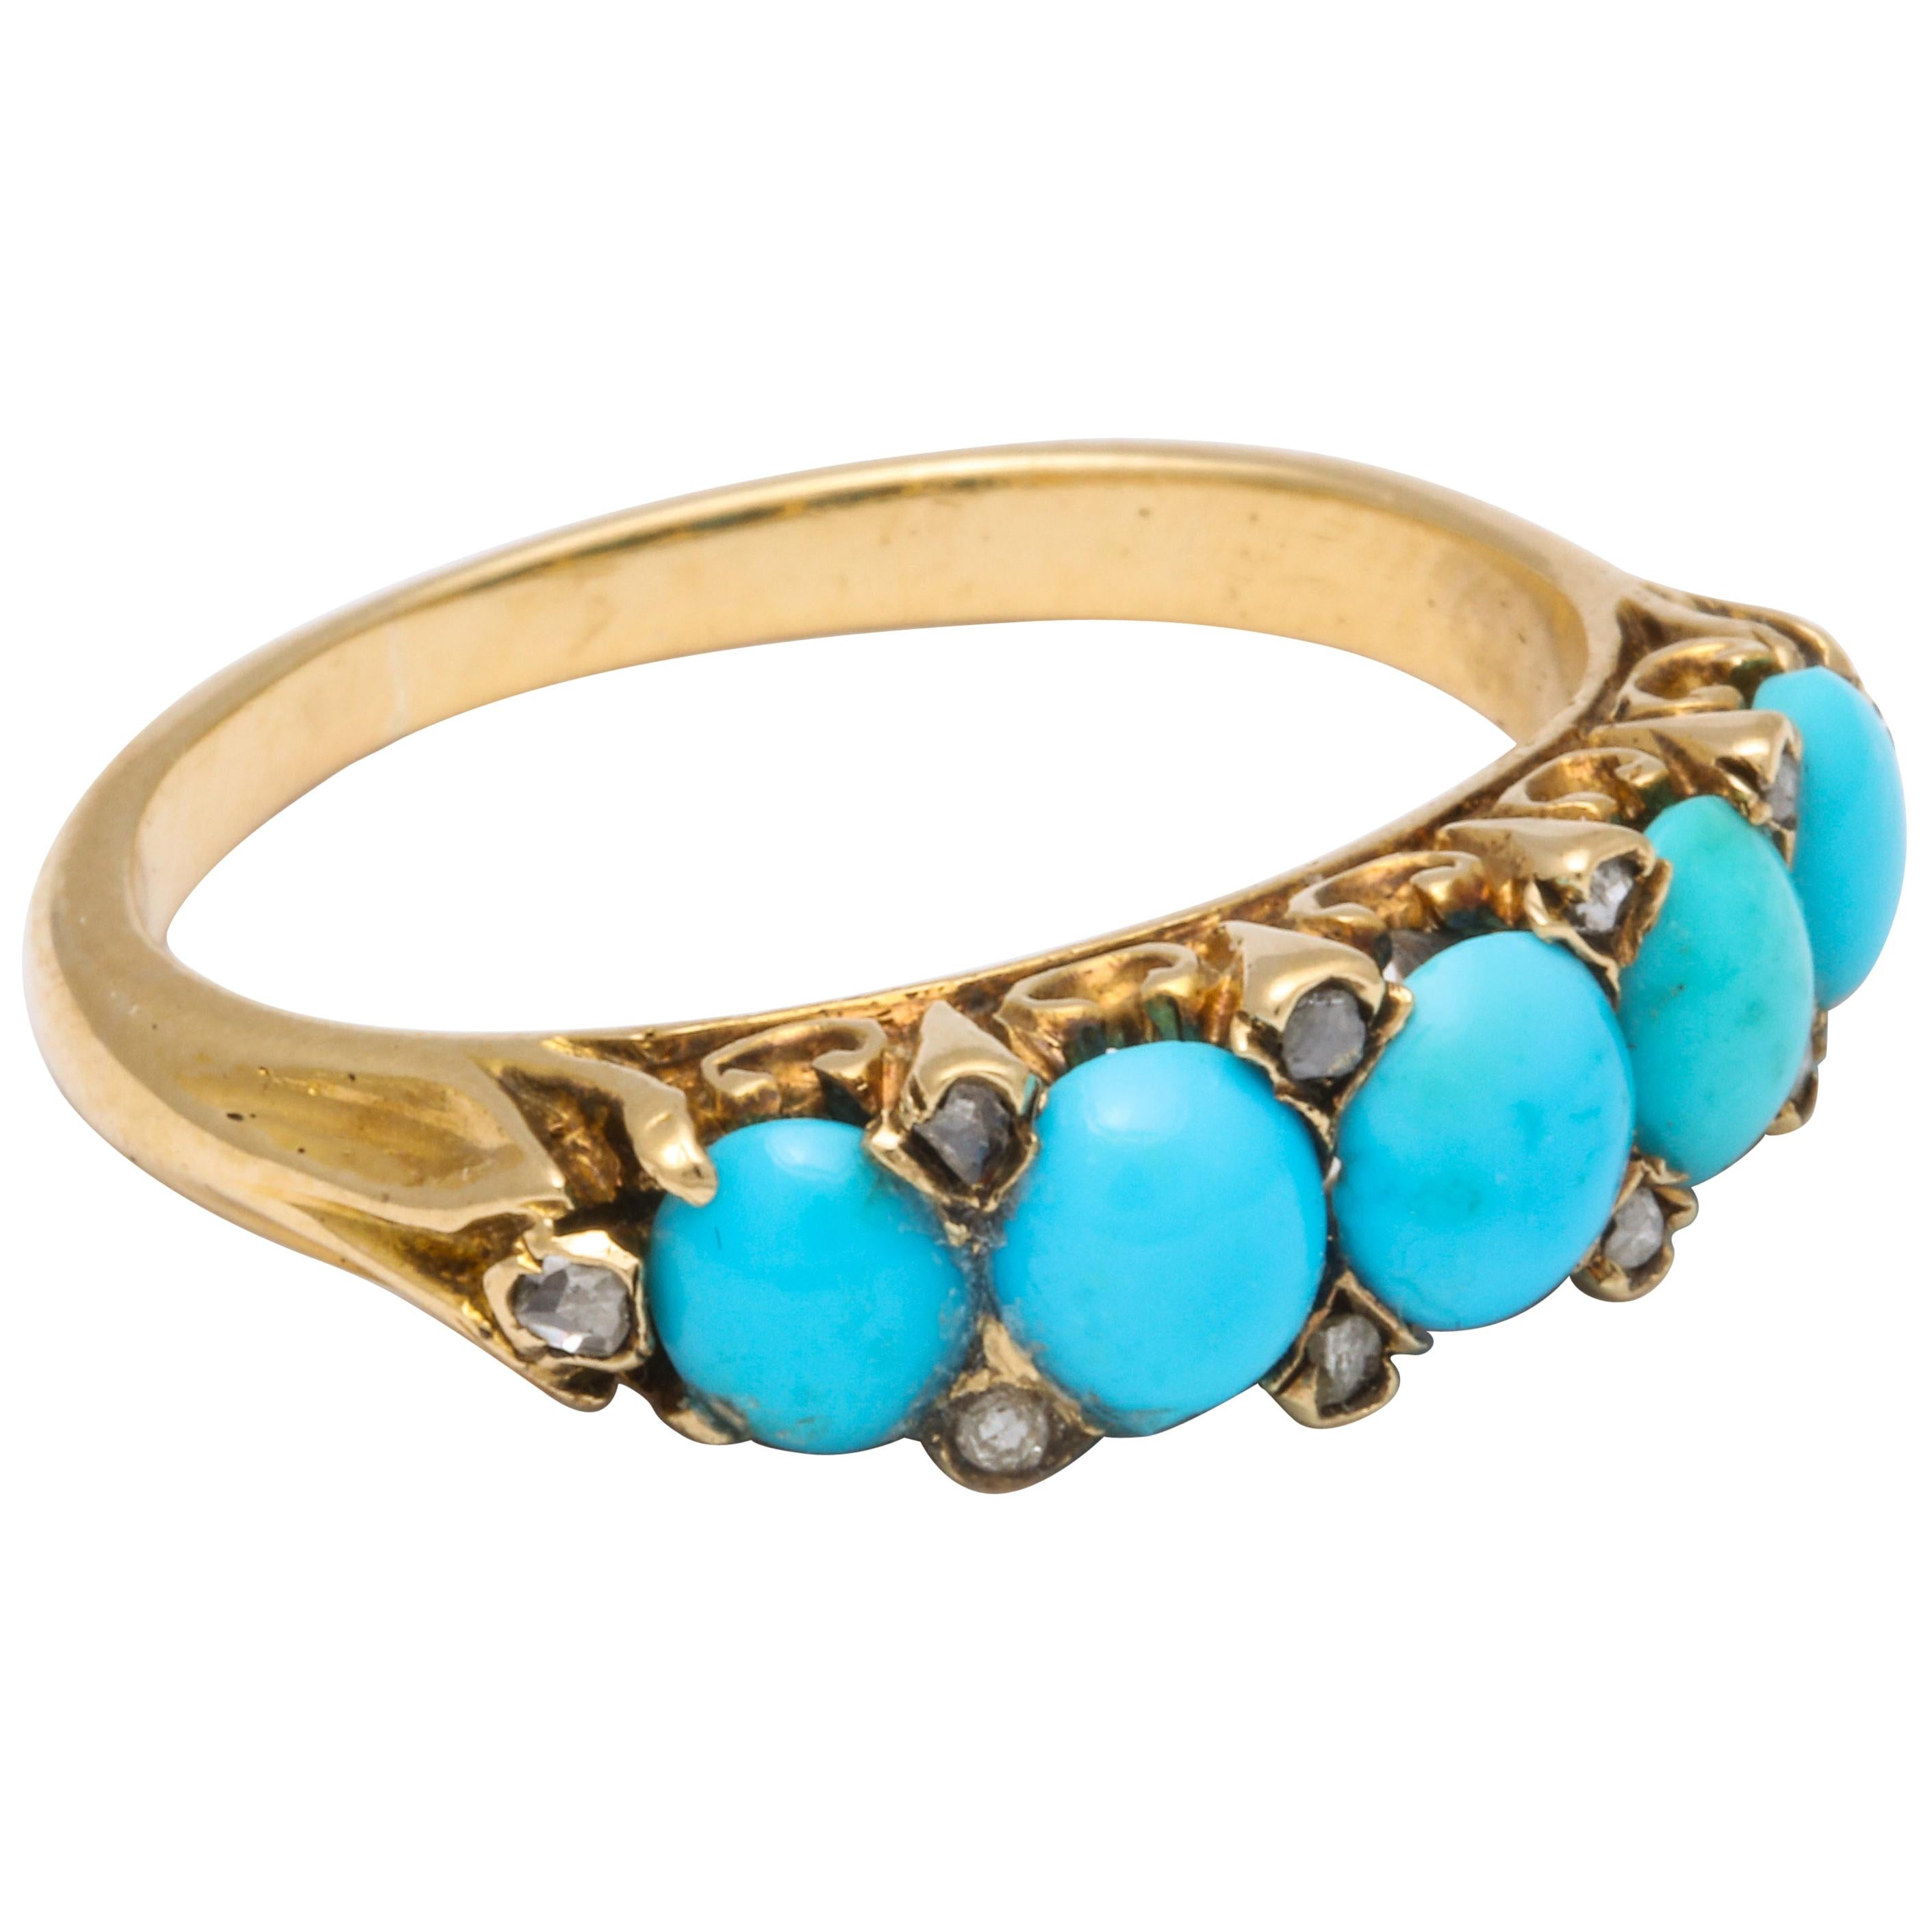 Antique Victorian Turquoise and Diamond Ring